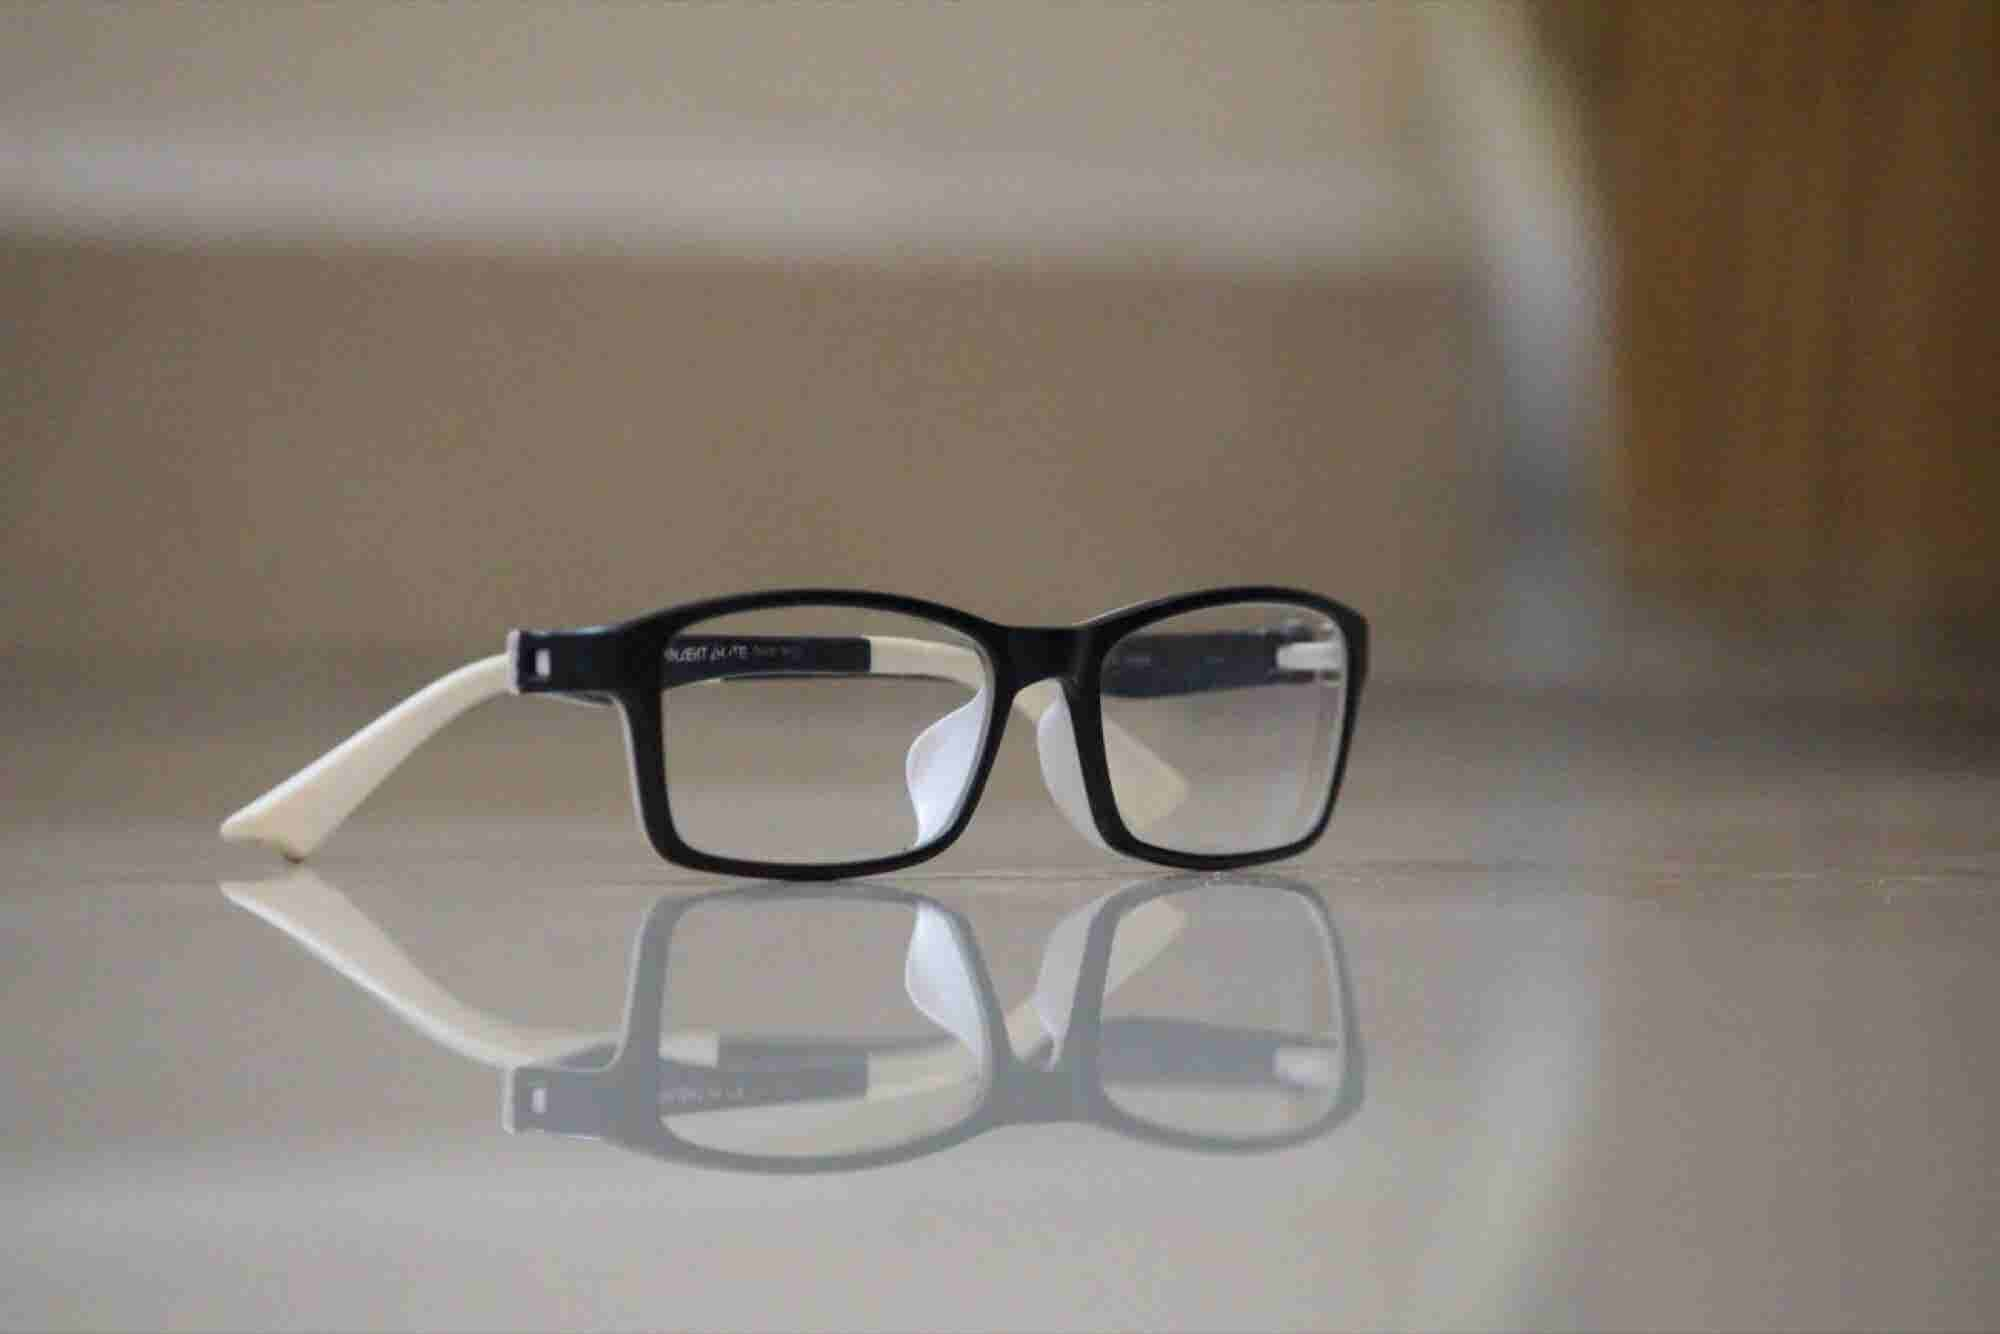 With Tech First Attitude, Lenskart is Looking to Invest in Early-stage Eye-tech Startups